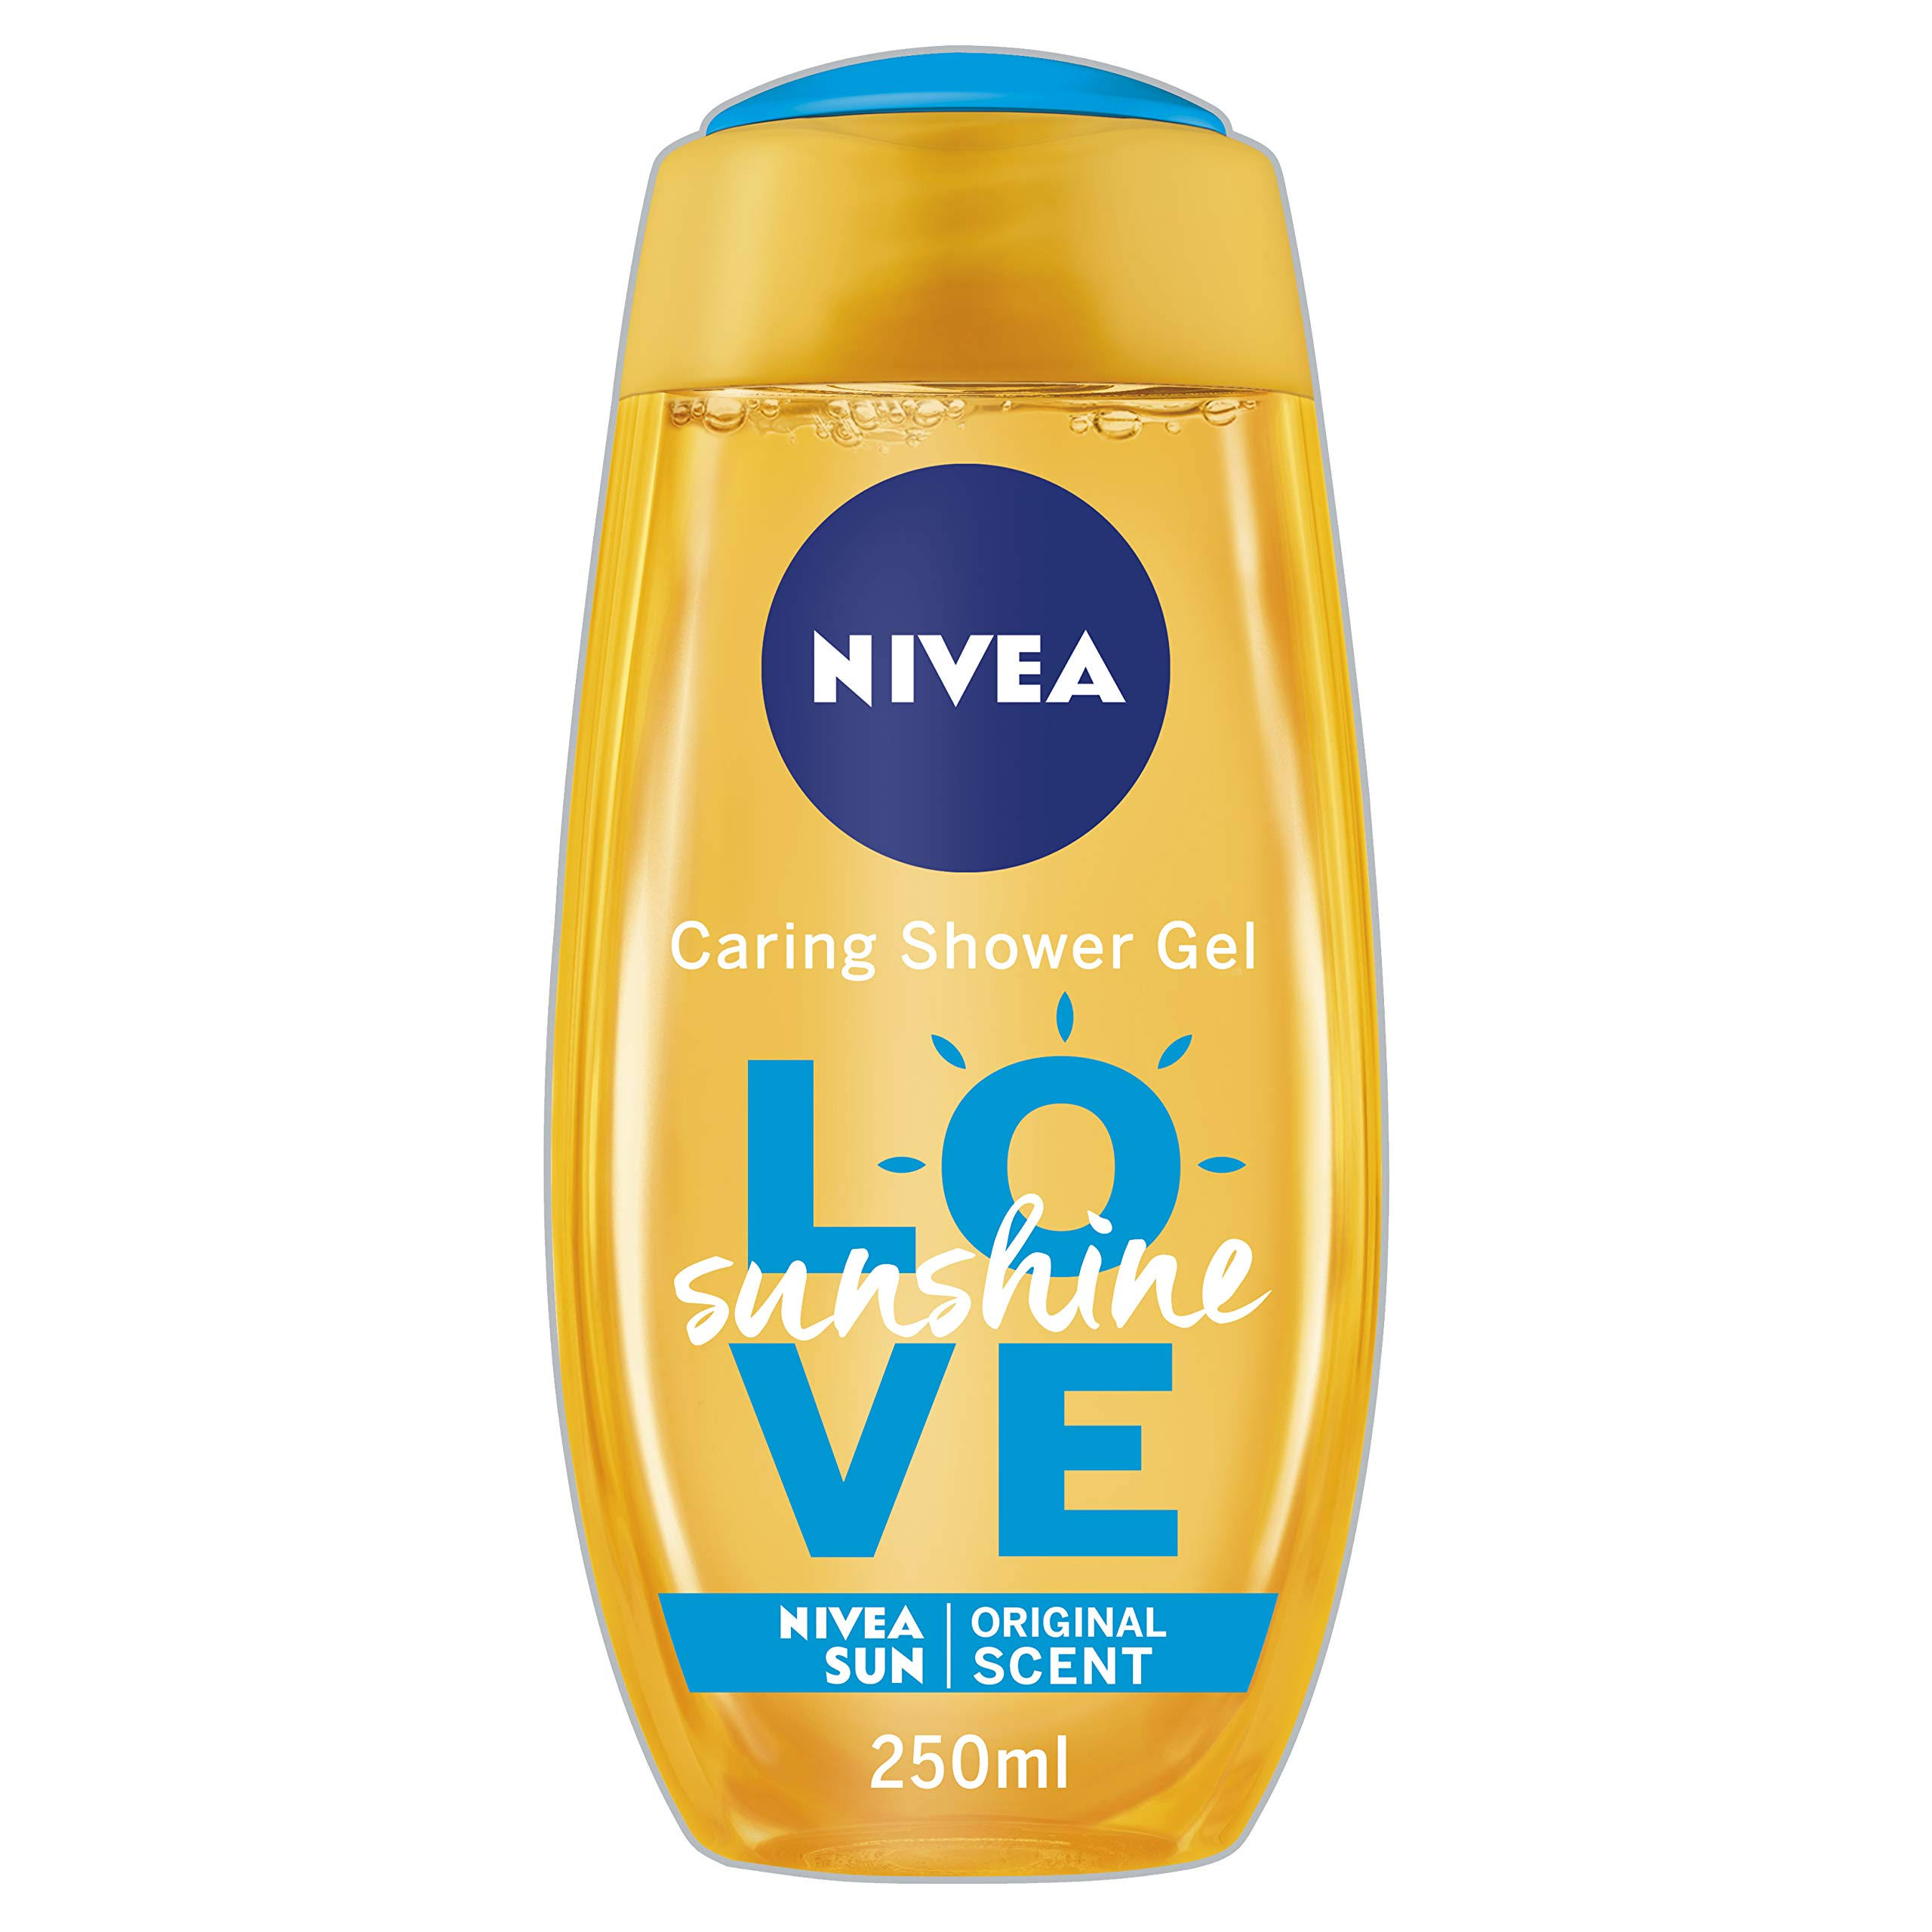 NIVEA Sunshine Love Shower Gel - 250ml